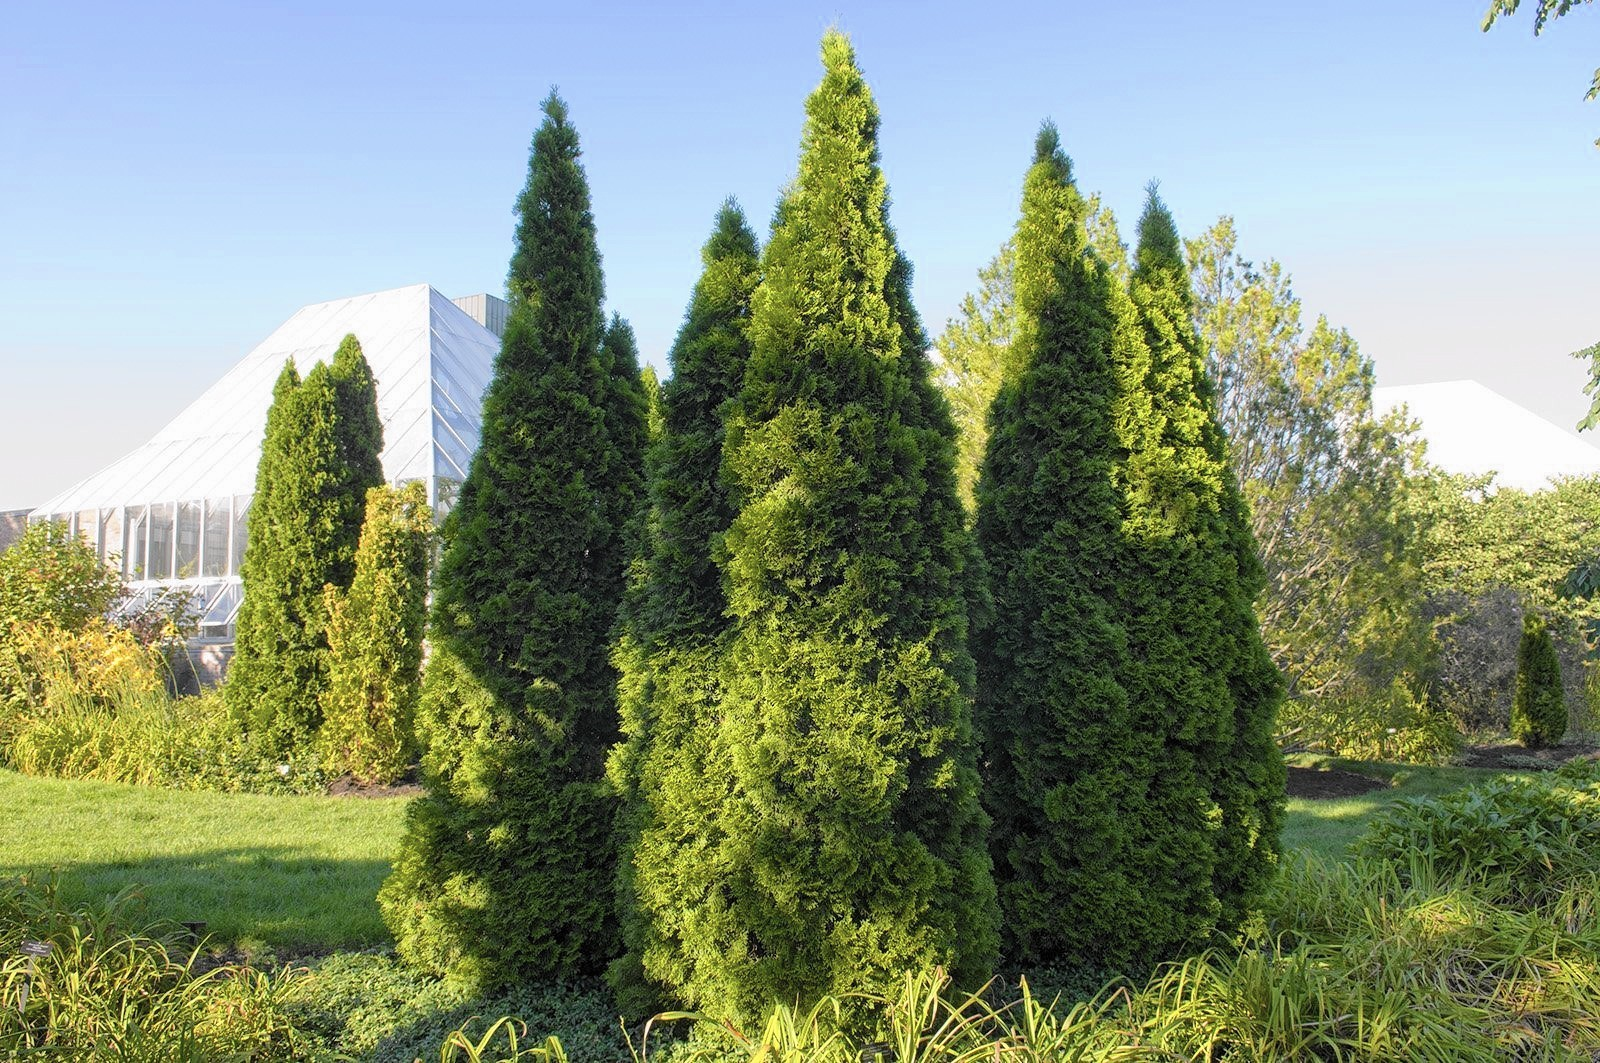 Demise of arborvitae can be linked to variety of factors